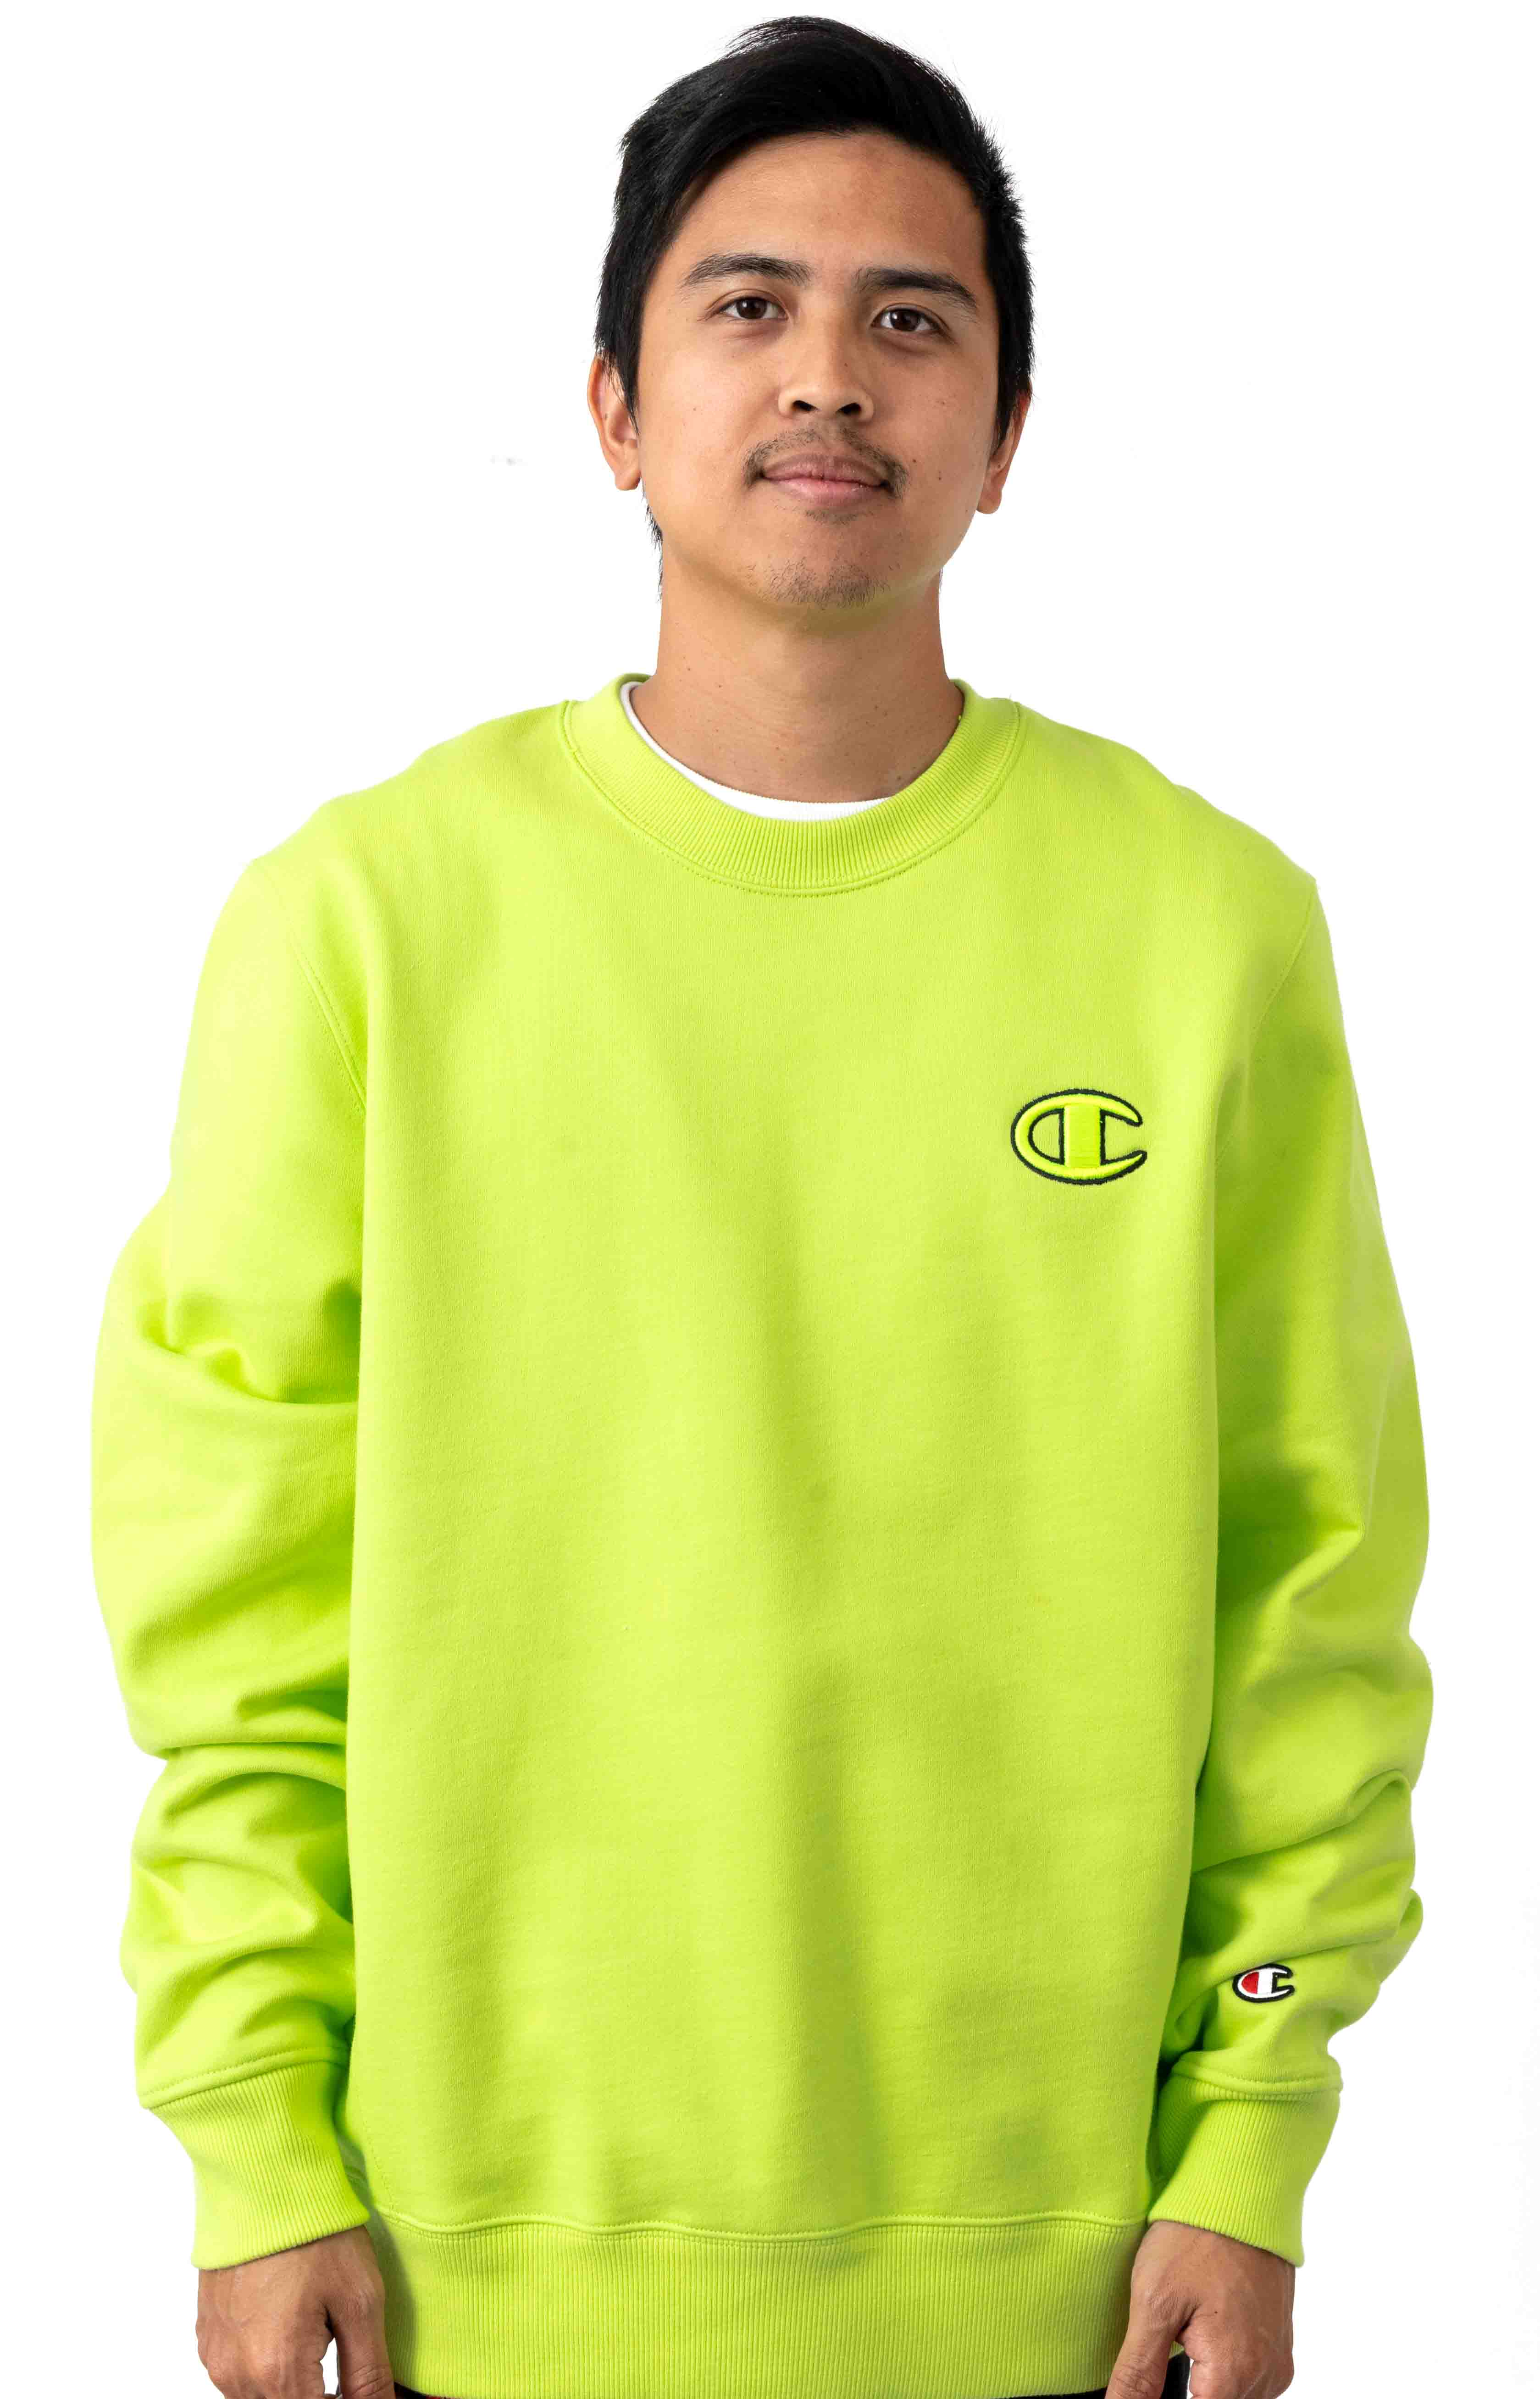 Super Fleece 2.0 Crewneck - Neon Light